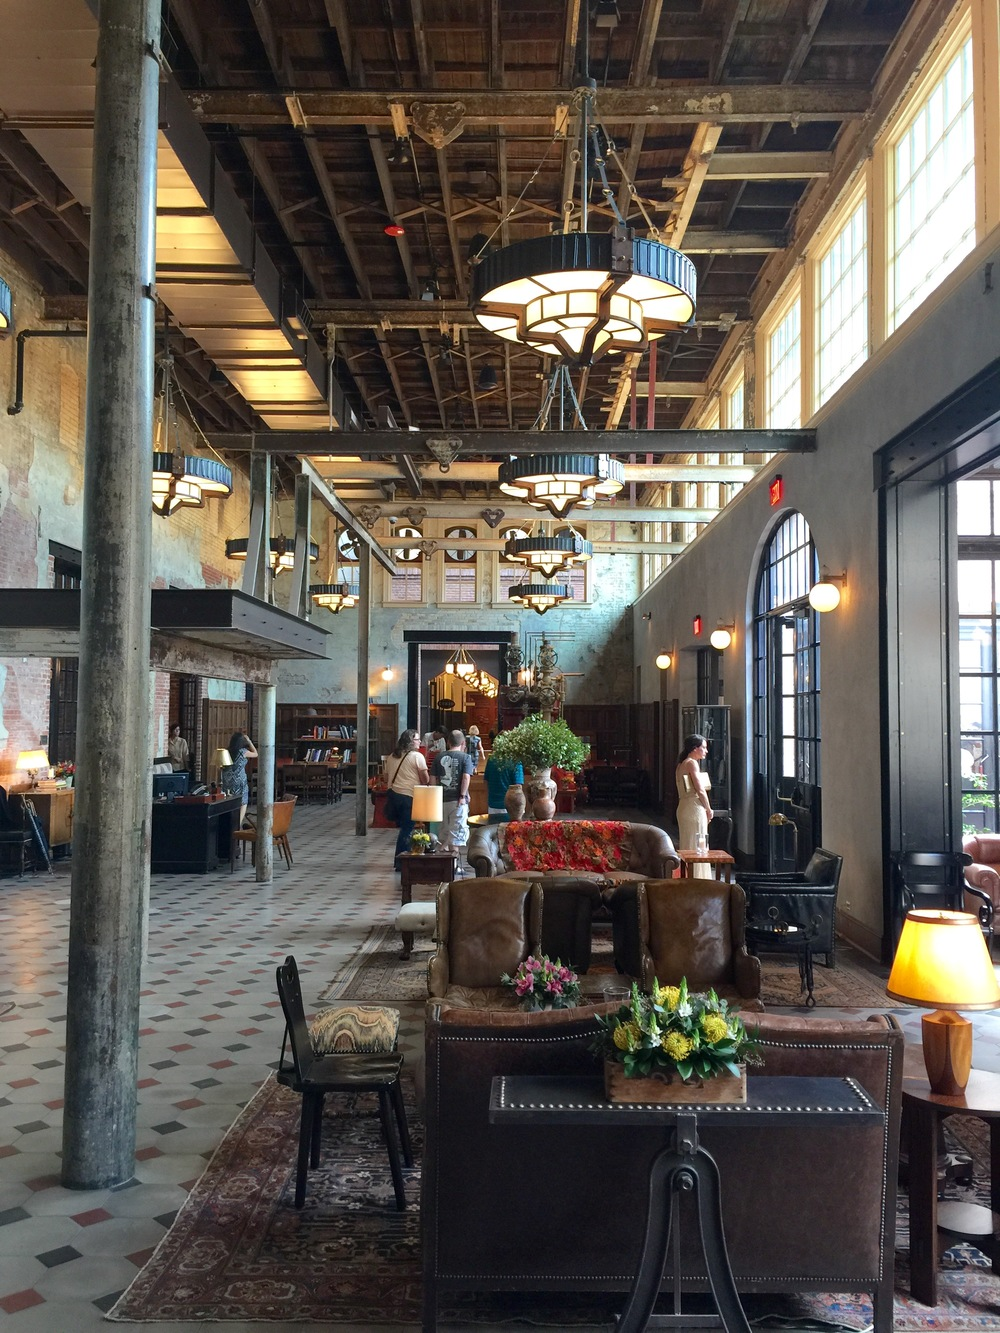 Must see 39 hotel emma 39 a hotel that 39 s texan rustic for Industrial hotel design